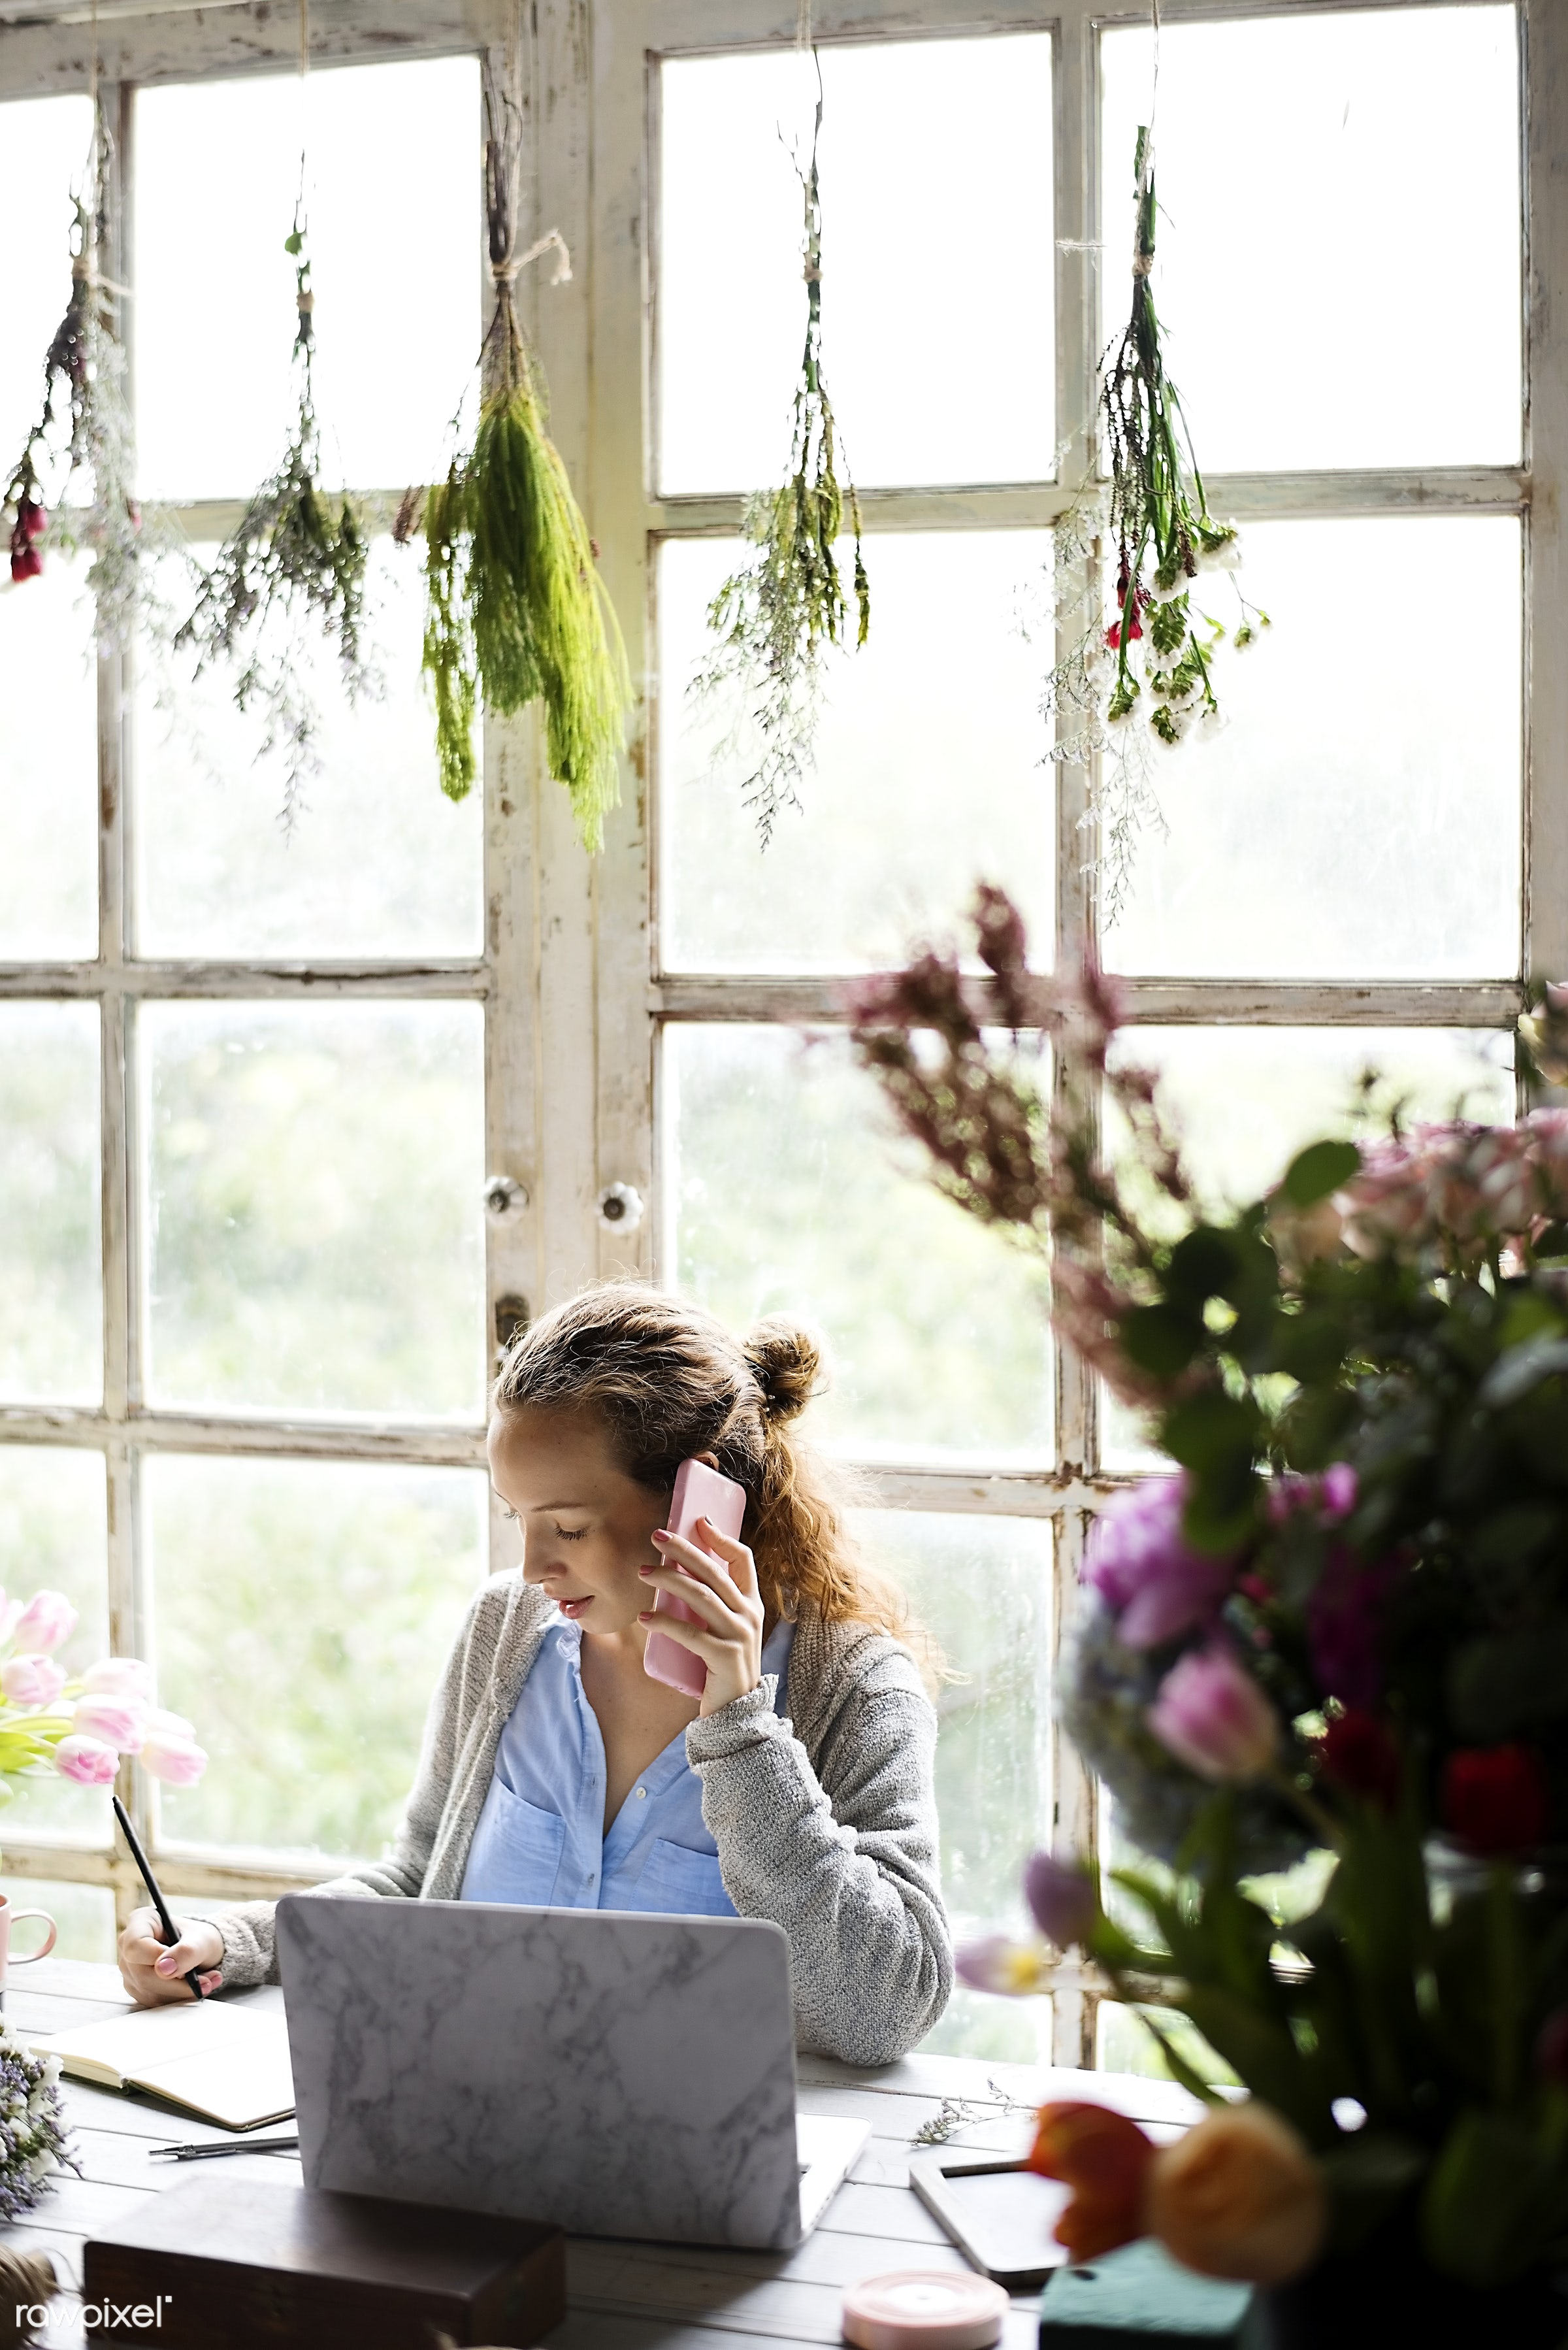 Woman talking on the phone with plants hanging above - hanging, plants, leaves, florist, botany, woman, caucasian, girl,...